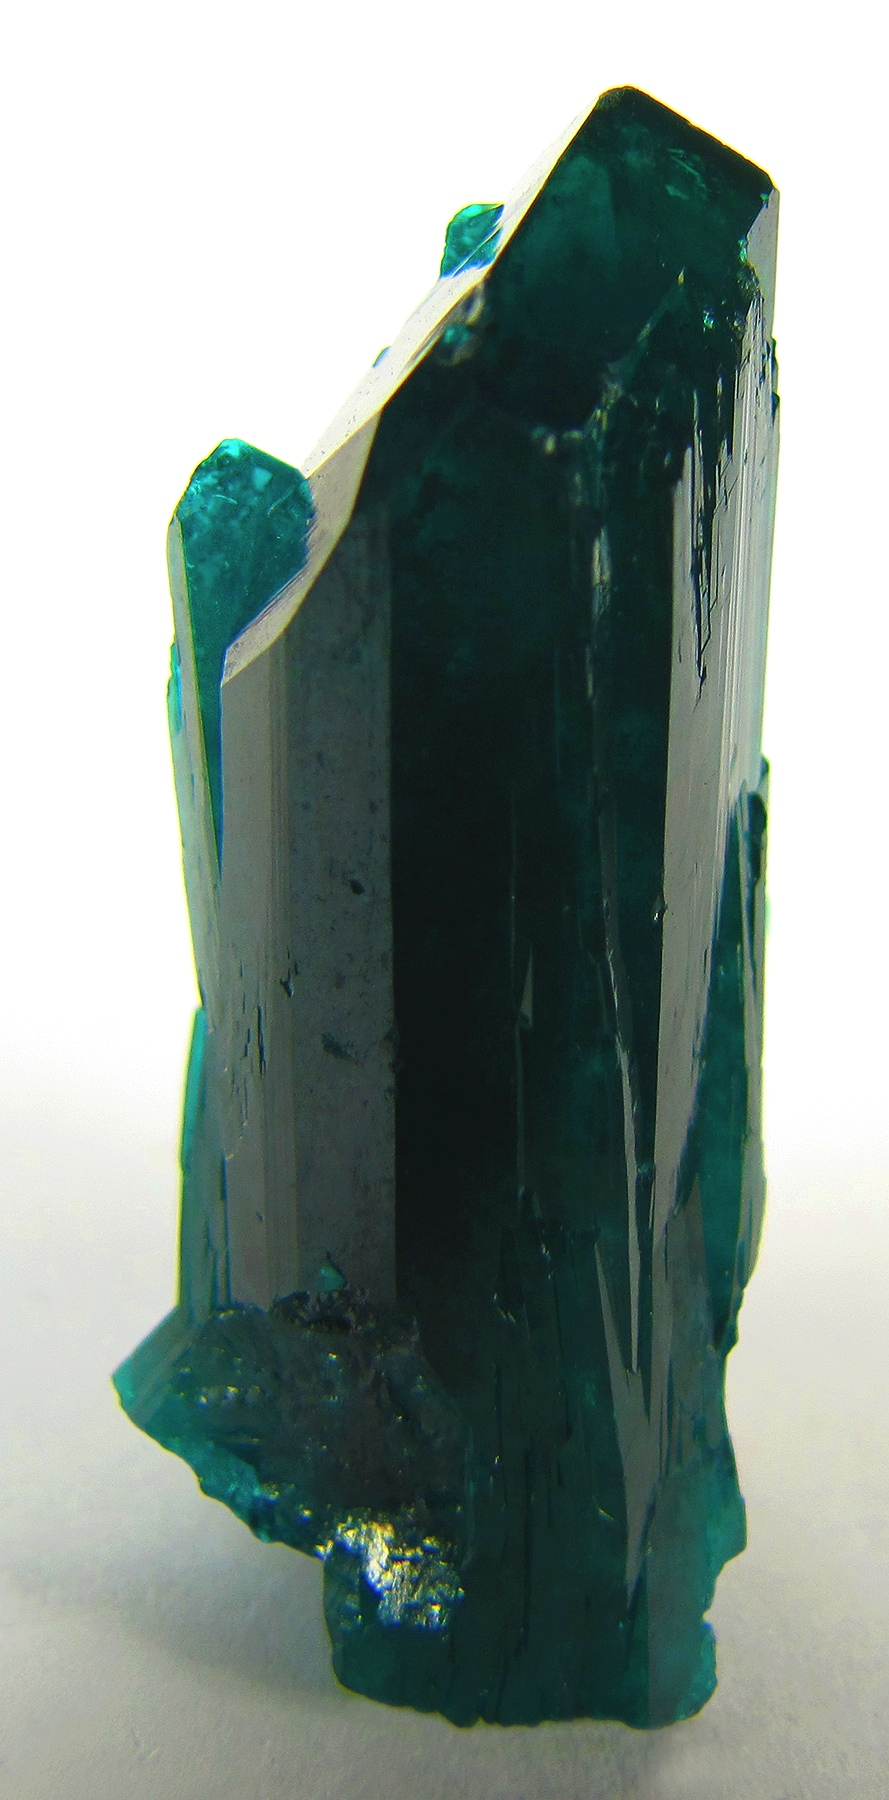 A sharp single crystal large size perfect termination showing steep